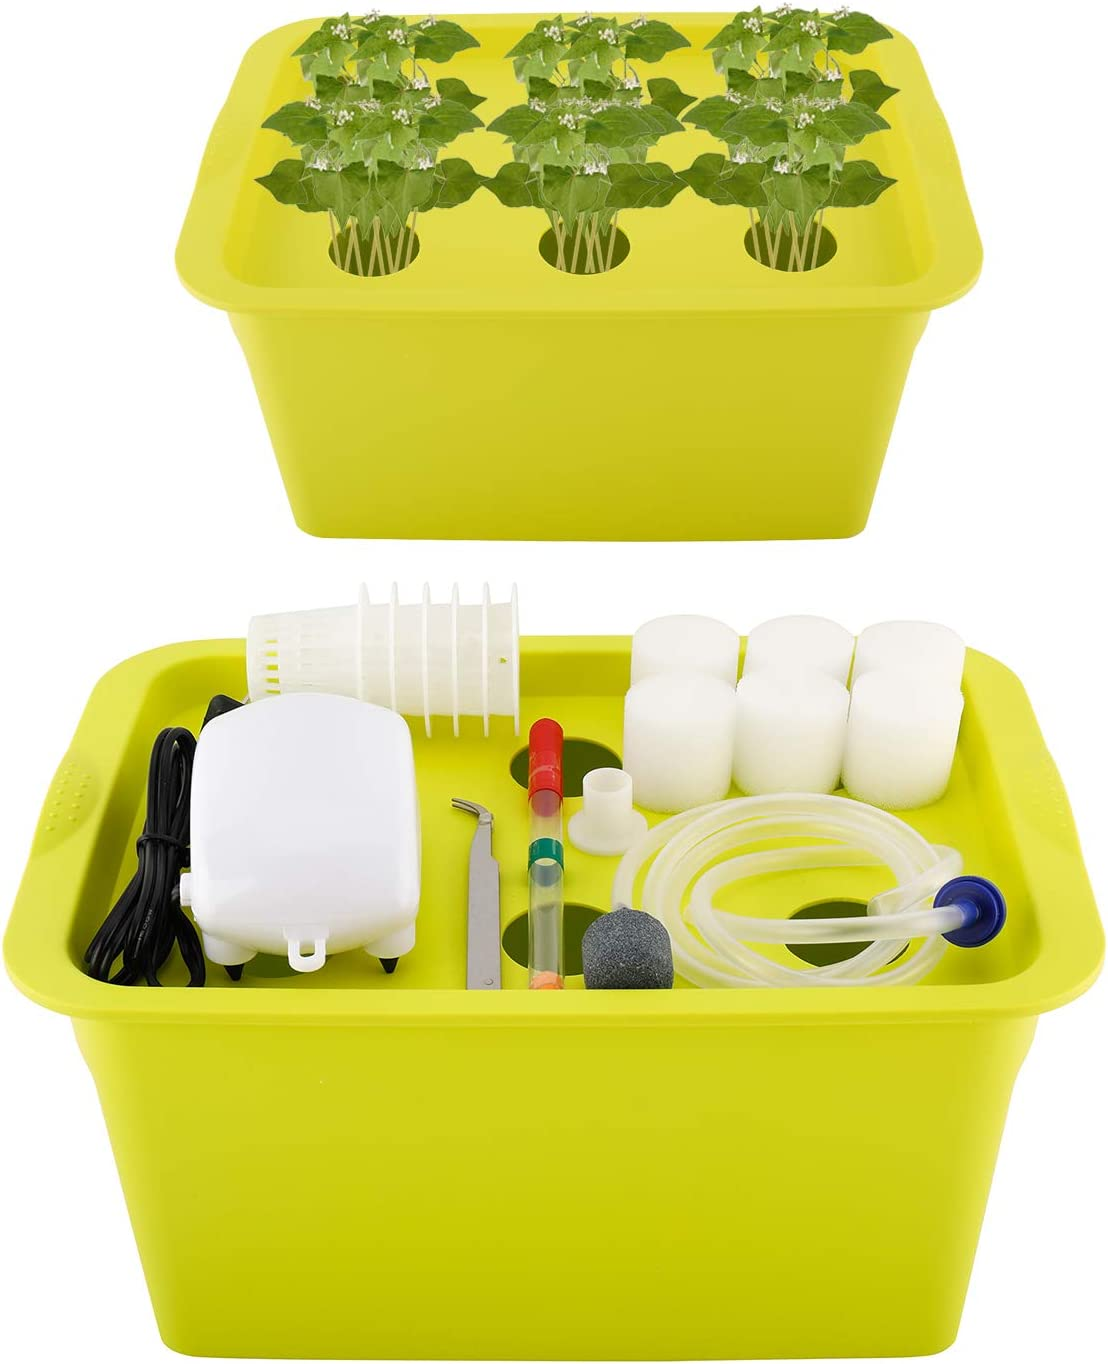 Homend Indoor Hydroponic Grow Kit with Bubble Stone, 6 Plant Sites (Holes) Bucket,Buoy,Air Pump, Planting Sponges - Best Indoor Herb Garden for Plants - Grow Fast at Home (Green)